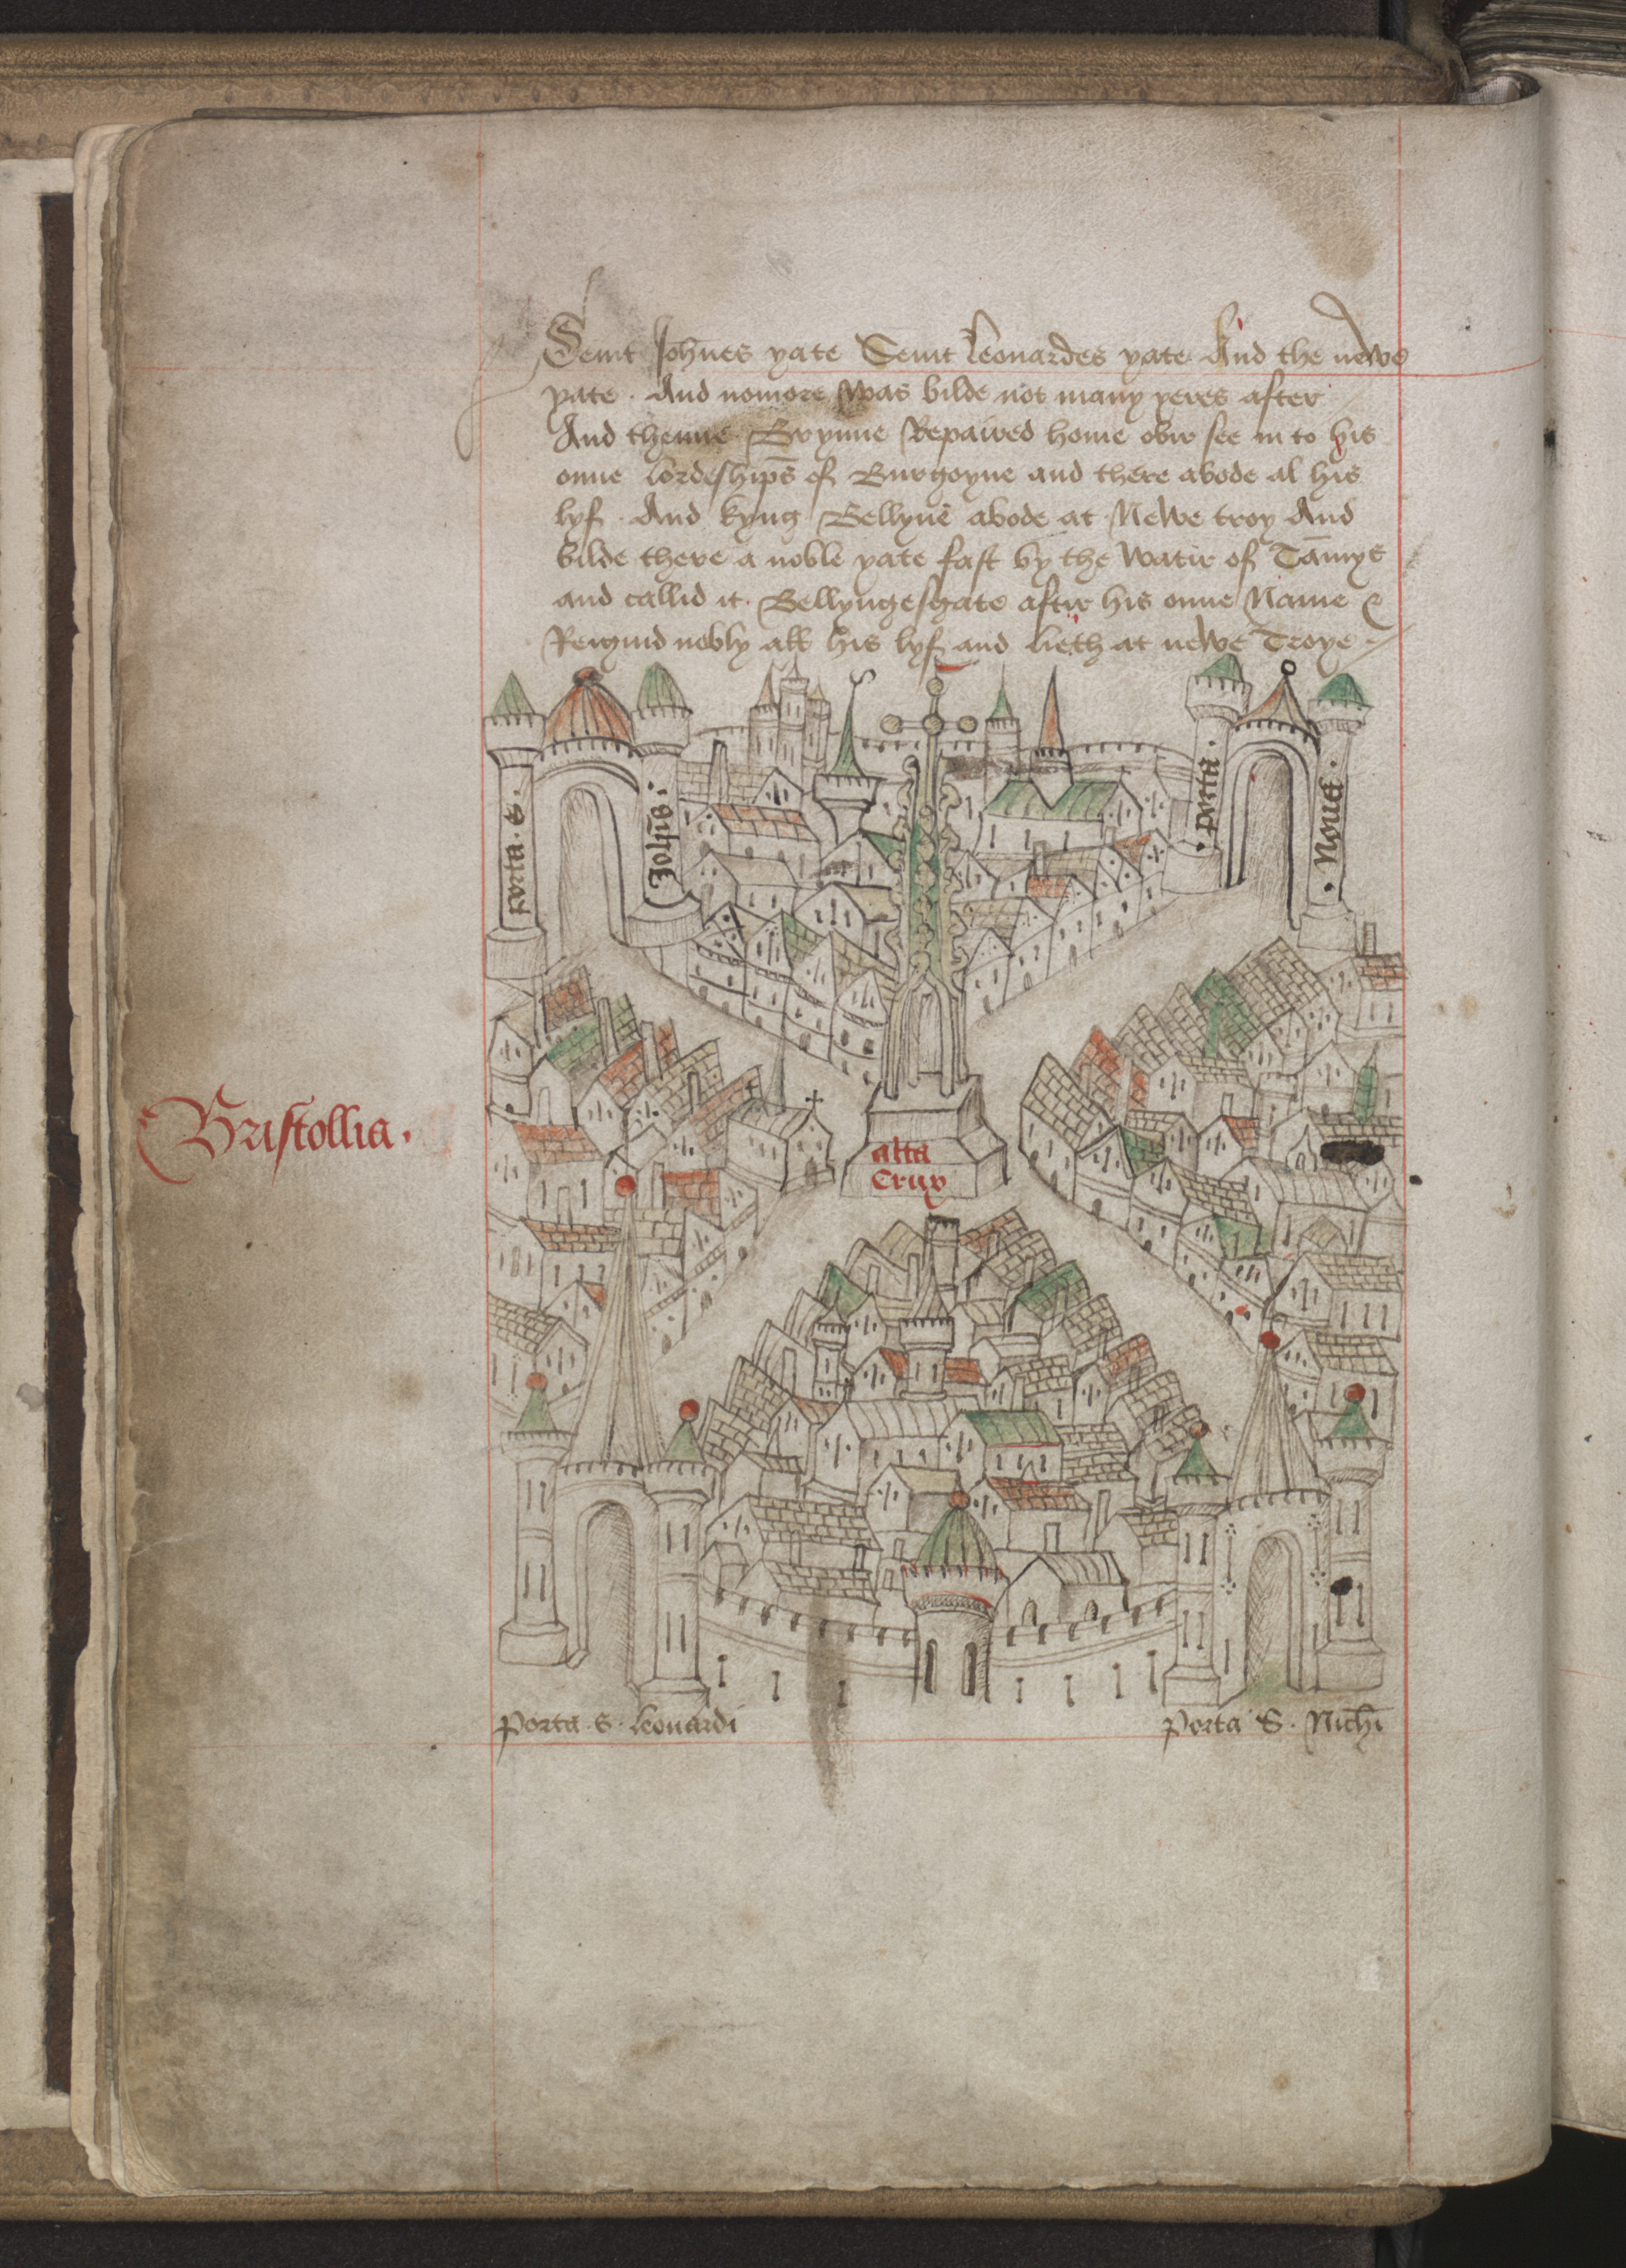 Ricart's 1480 map of Bristol is the oldest surviving city map in the UK